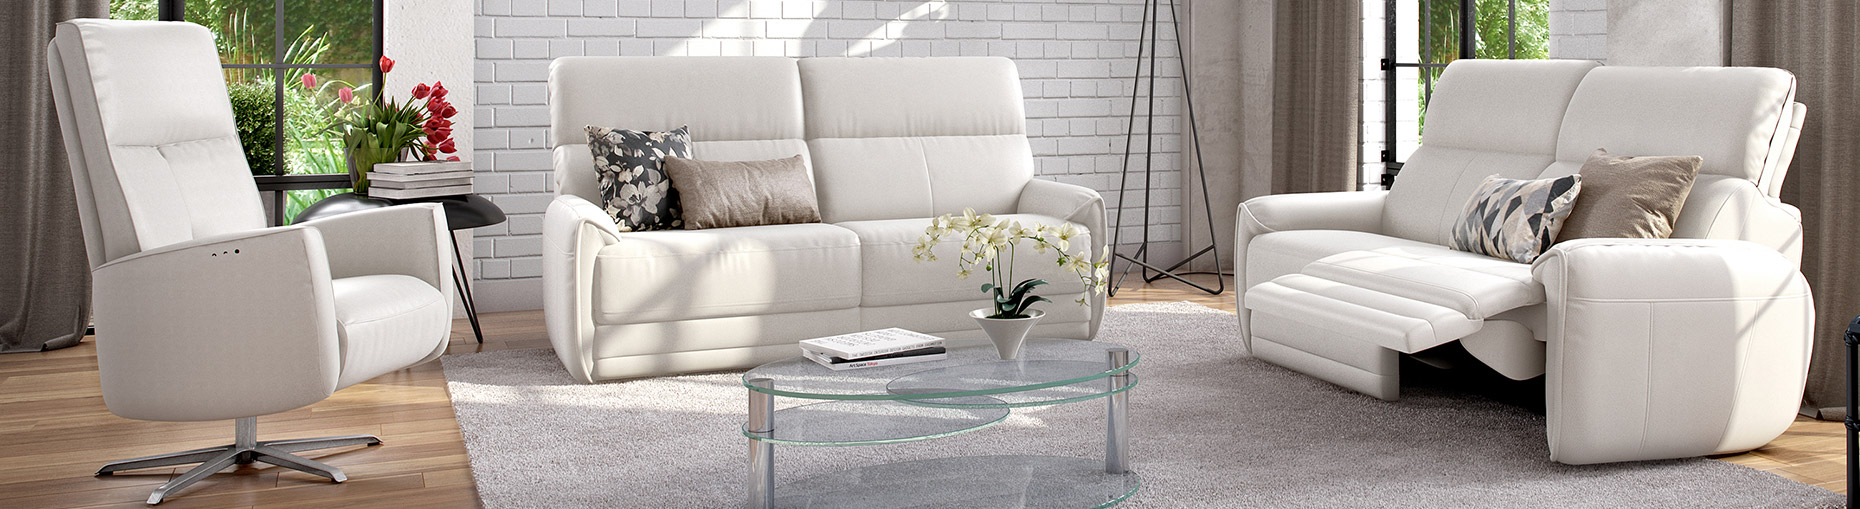 Bellvue sofa collection by ROM at Forrest Furnishing